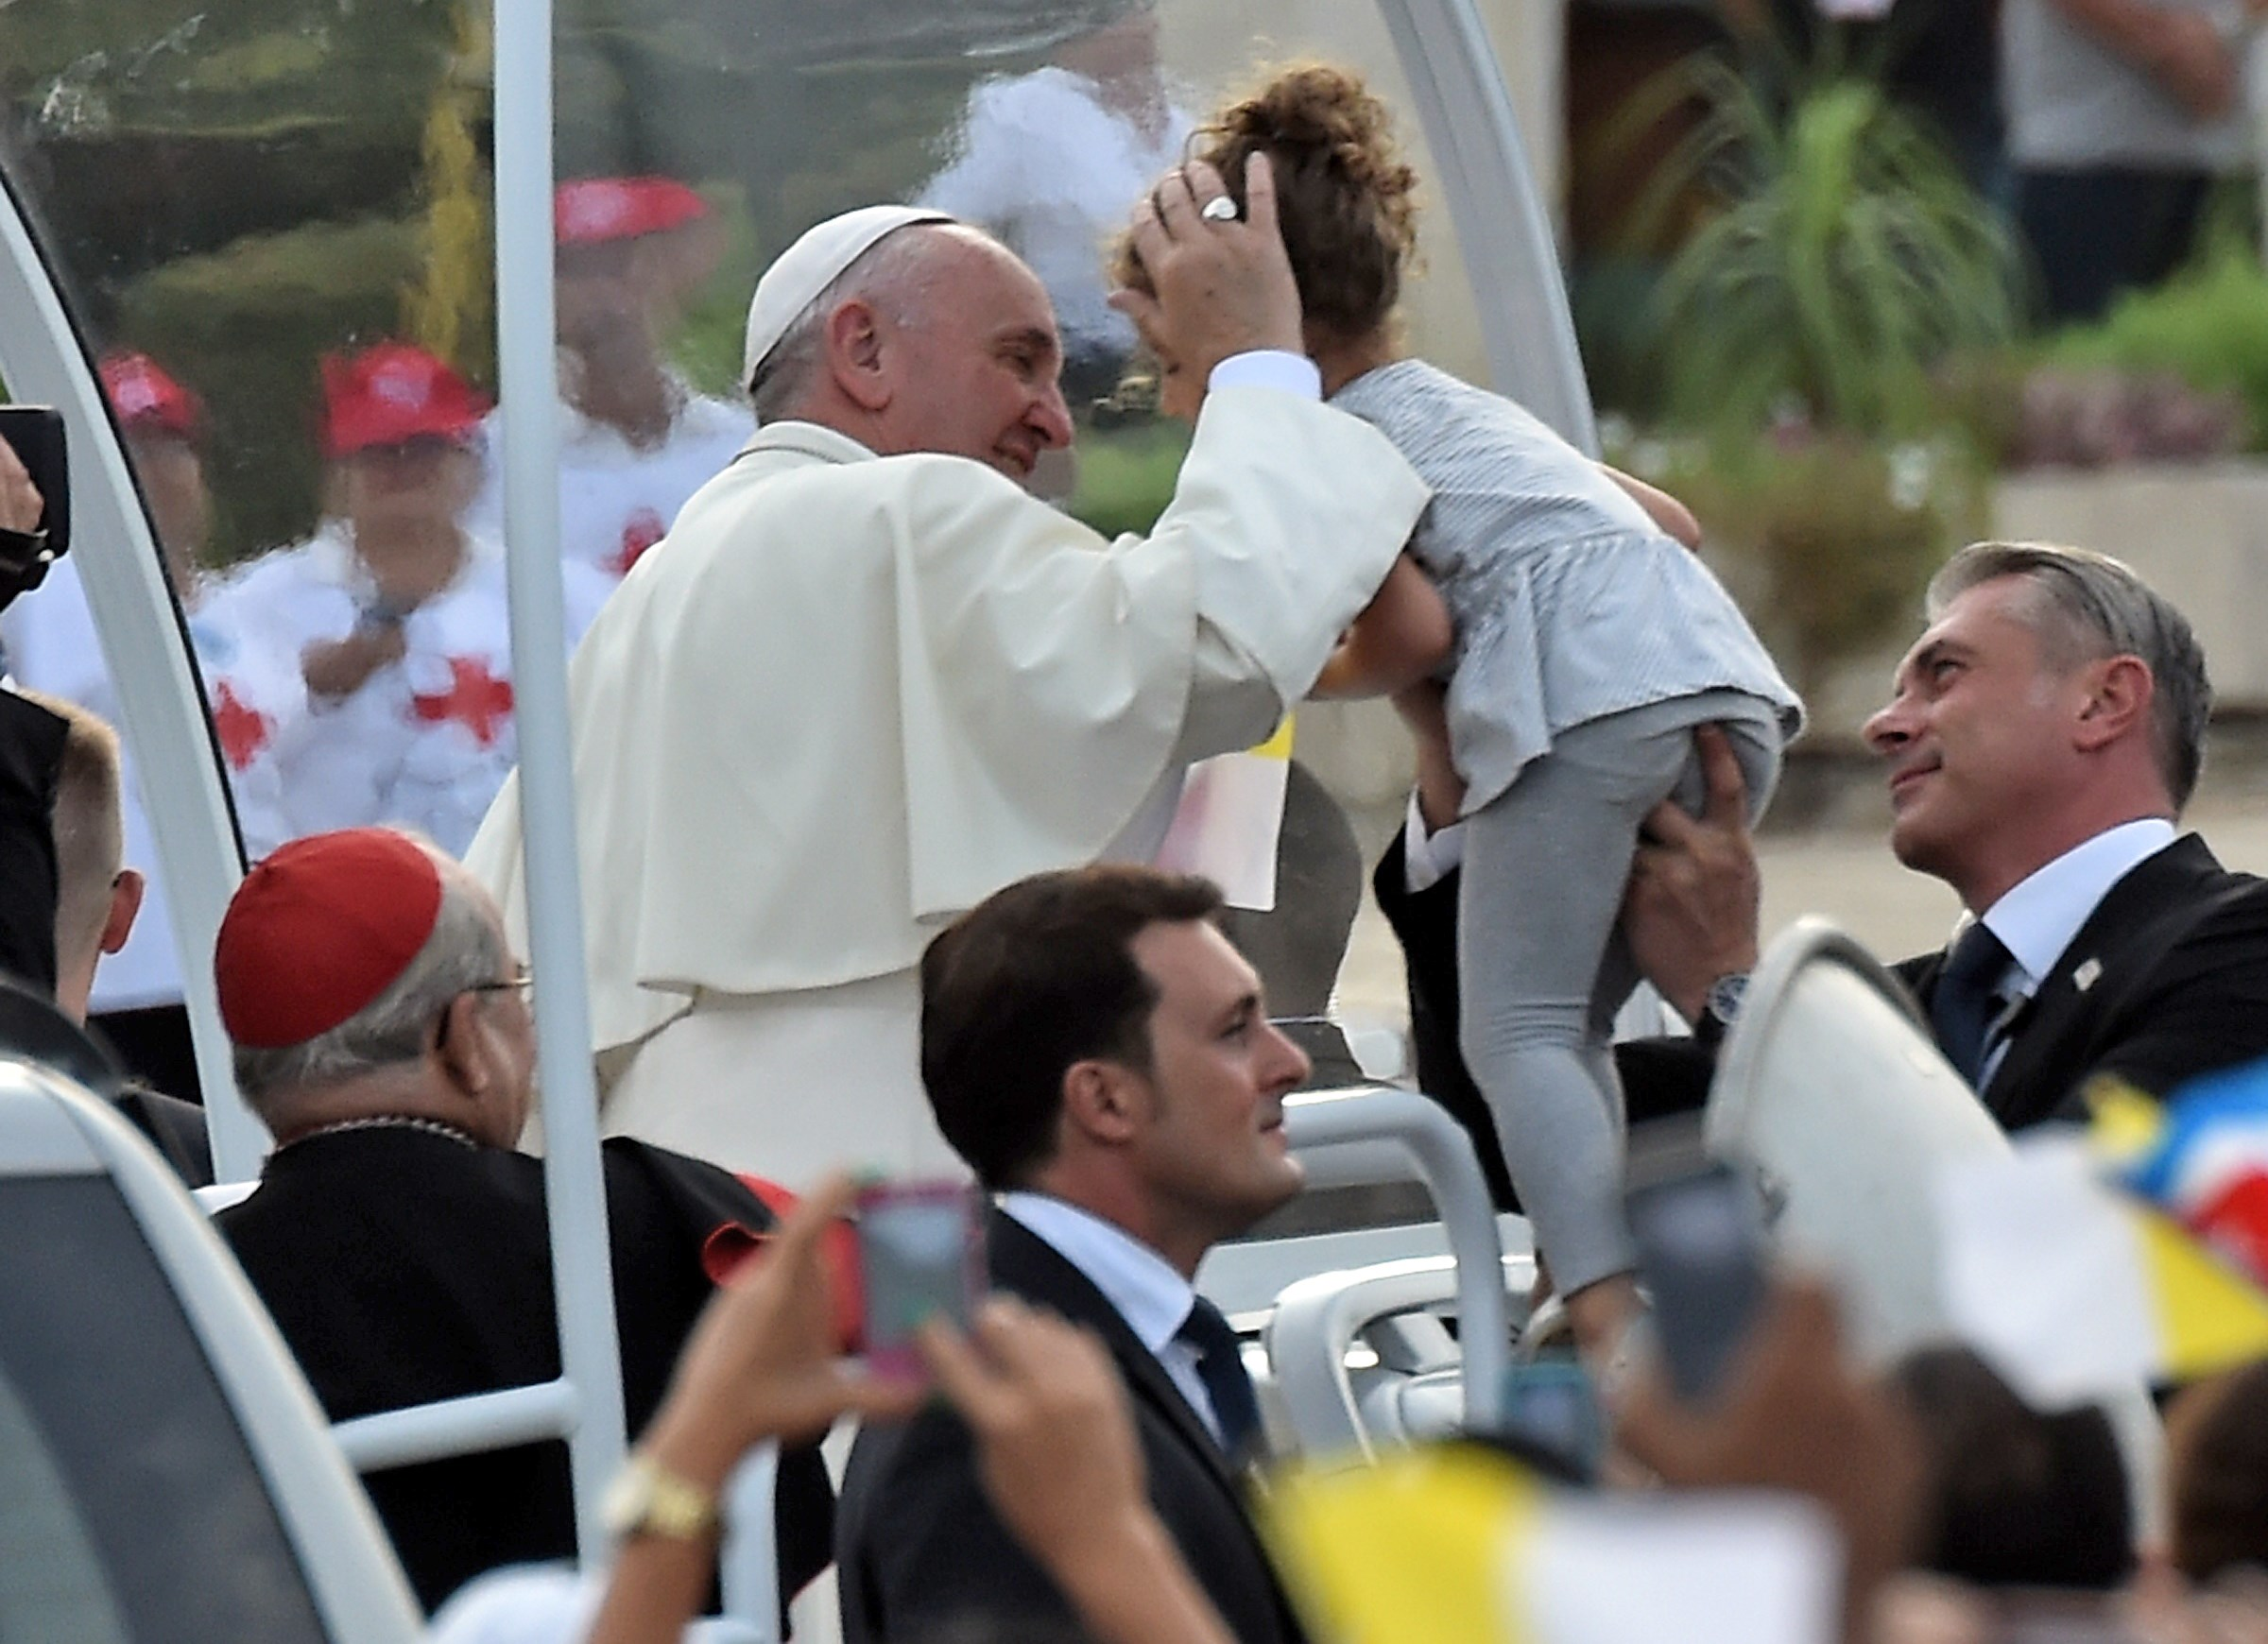 Pope Francis kisses a girl as he arrives at Revolution Square in Havana on September 20, 2015. Pope Francis will give mass on Revolution Square, the biggest event of his trip to Cuba, with nearly a million people expected to attend. The pontiff's eight-day tour will also take him to the United States.   AFP PHOTO / RODRIGO ARANGUA        (Photo credit should read RODRIGO ARANGUA/AFP/Getty Images)